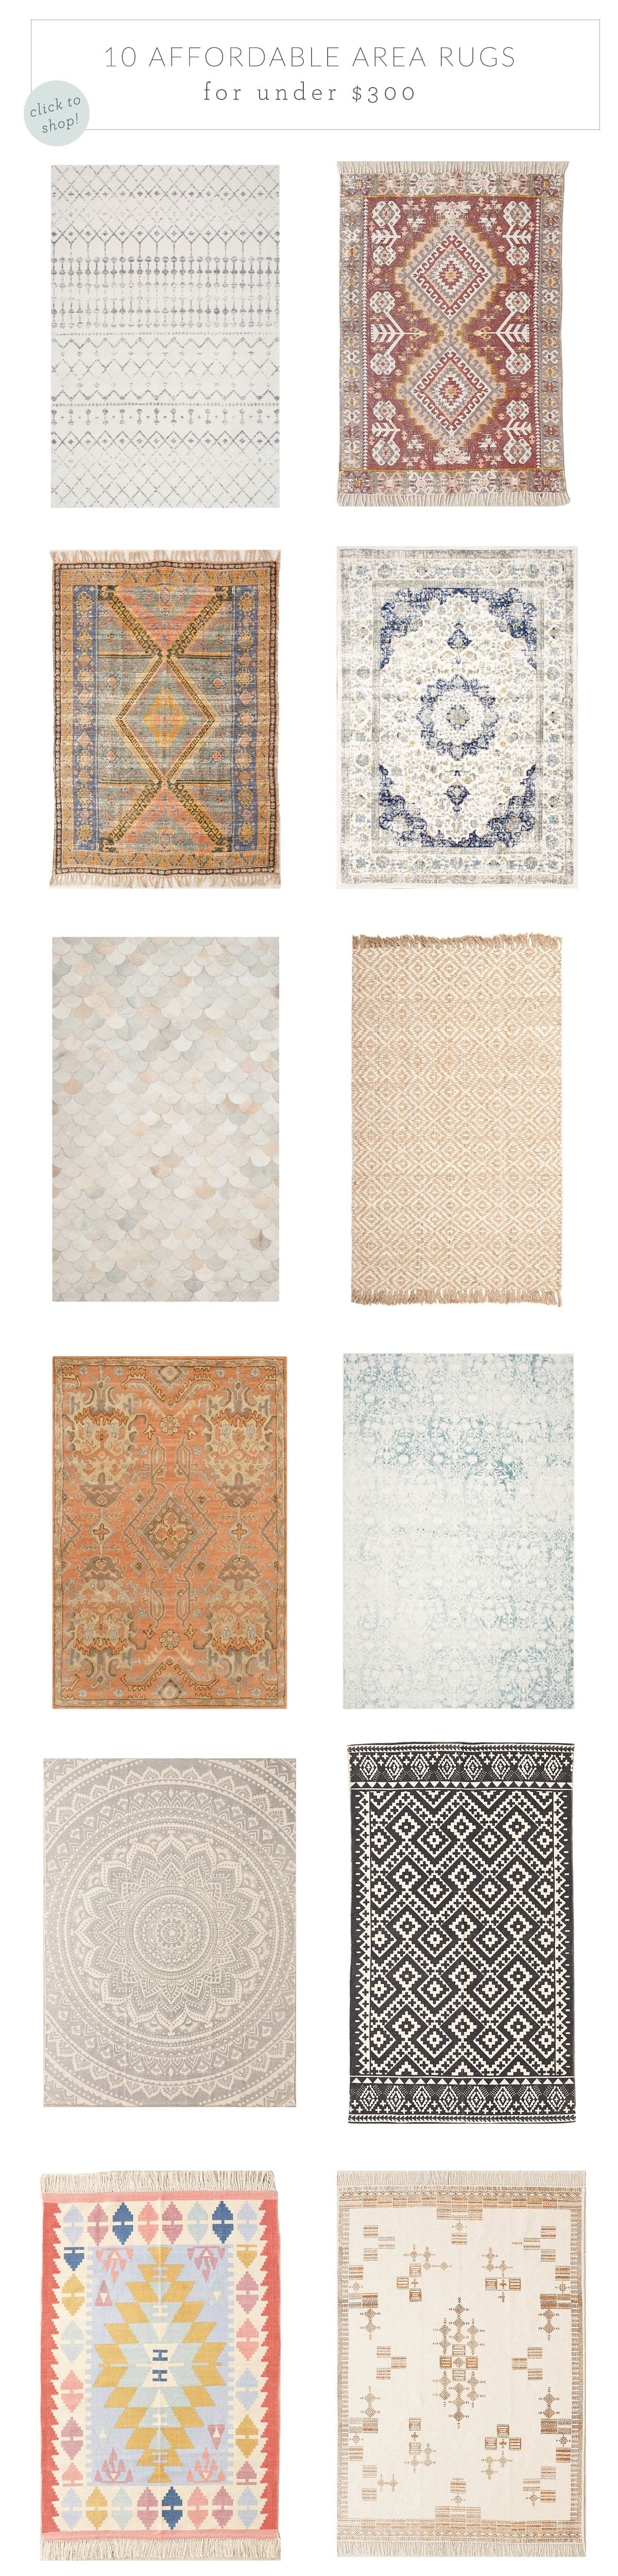 10 affordable area rugs for under $300 | advice from a twenty something Affordable Area Rugs